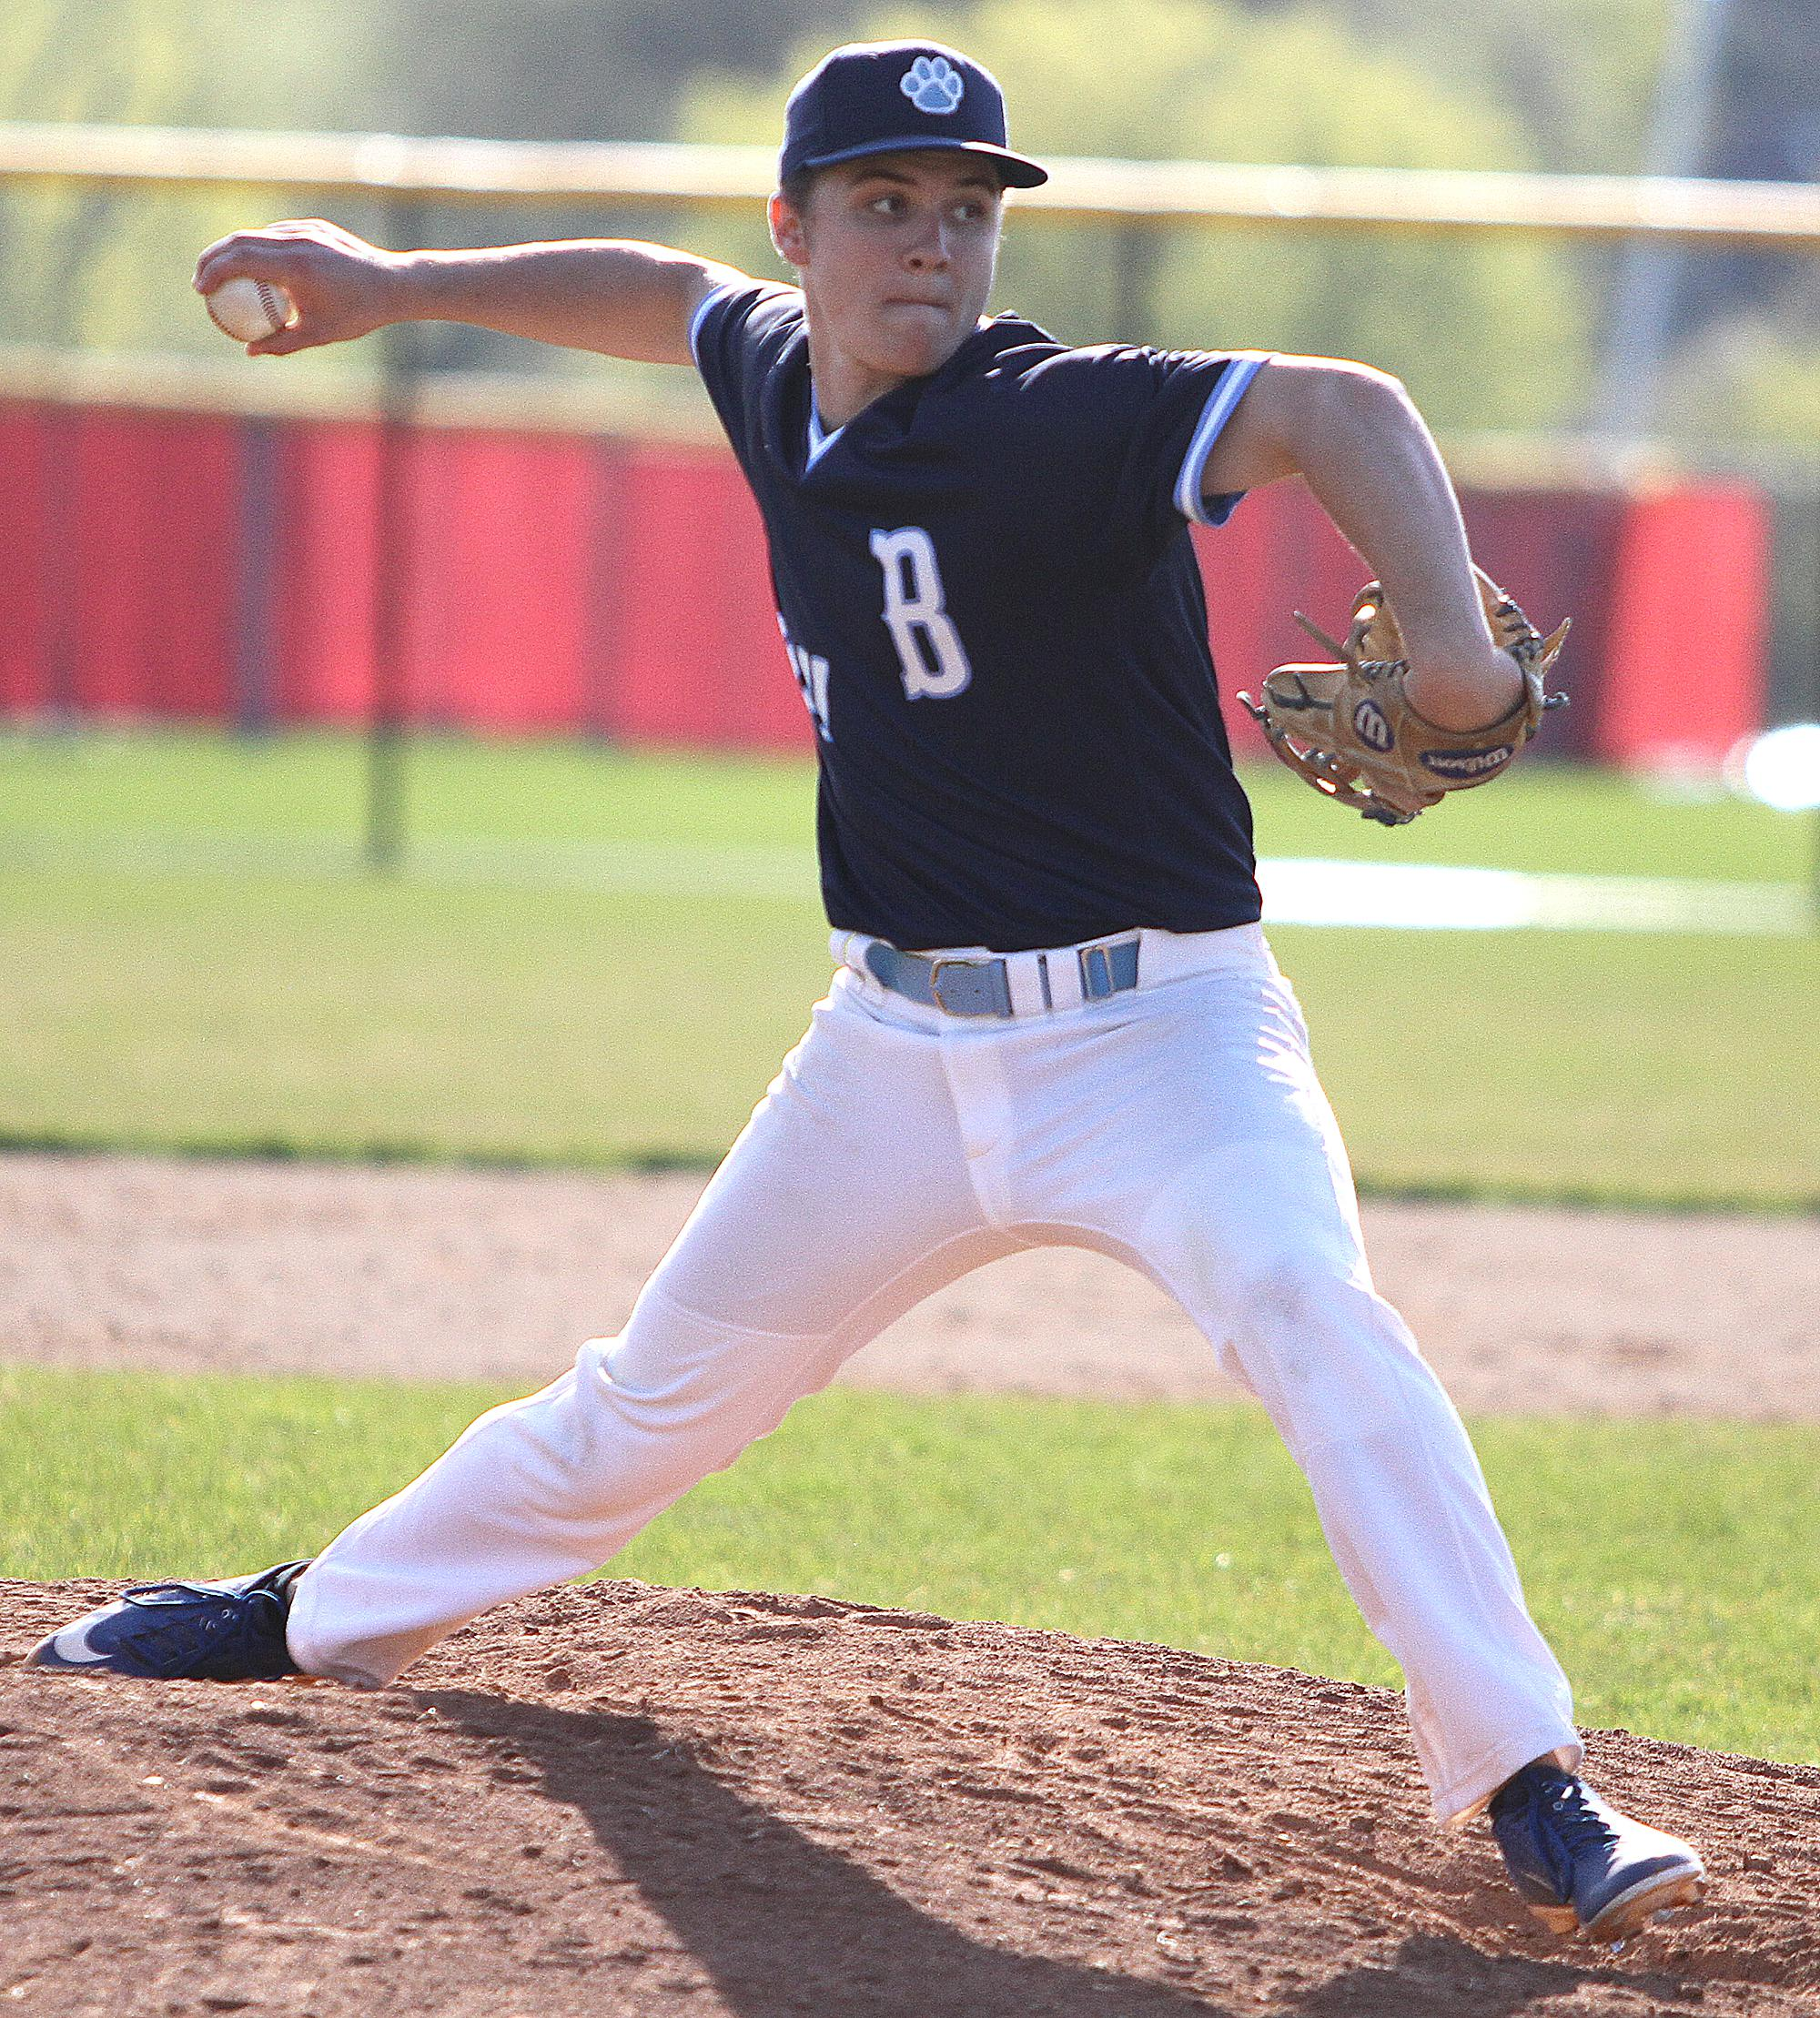 Senior righthander Jack Haring earned the win on the mound, improving his record to 4-0 this season by throwing five innings of shutout ball in which he struck out five, and allowed two hits and three walks. Photos by Drew Herron, SportsEngine